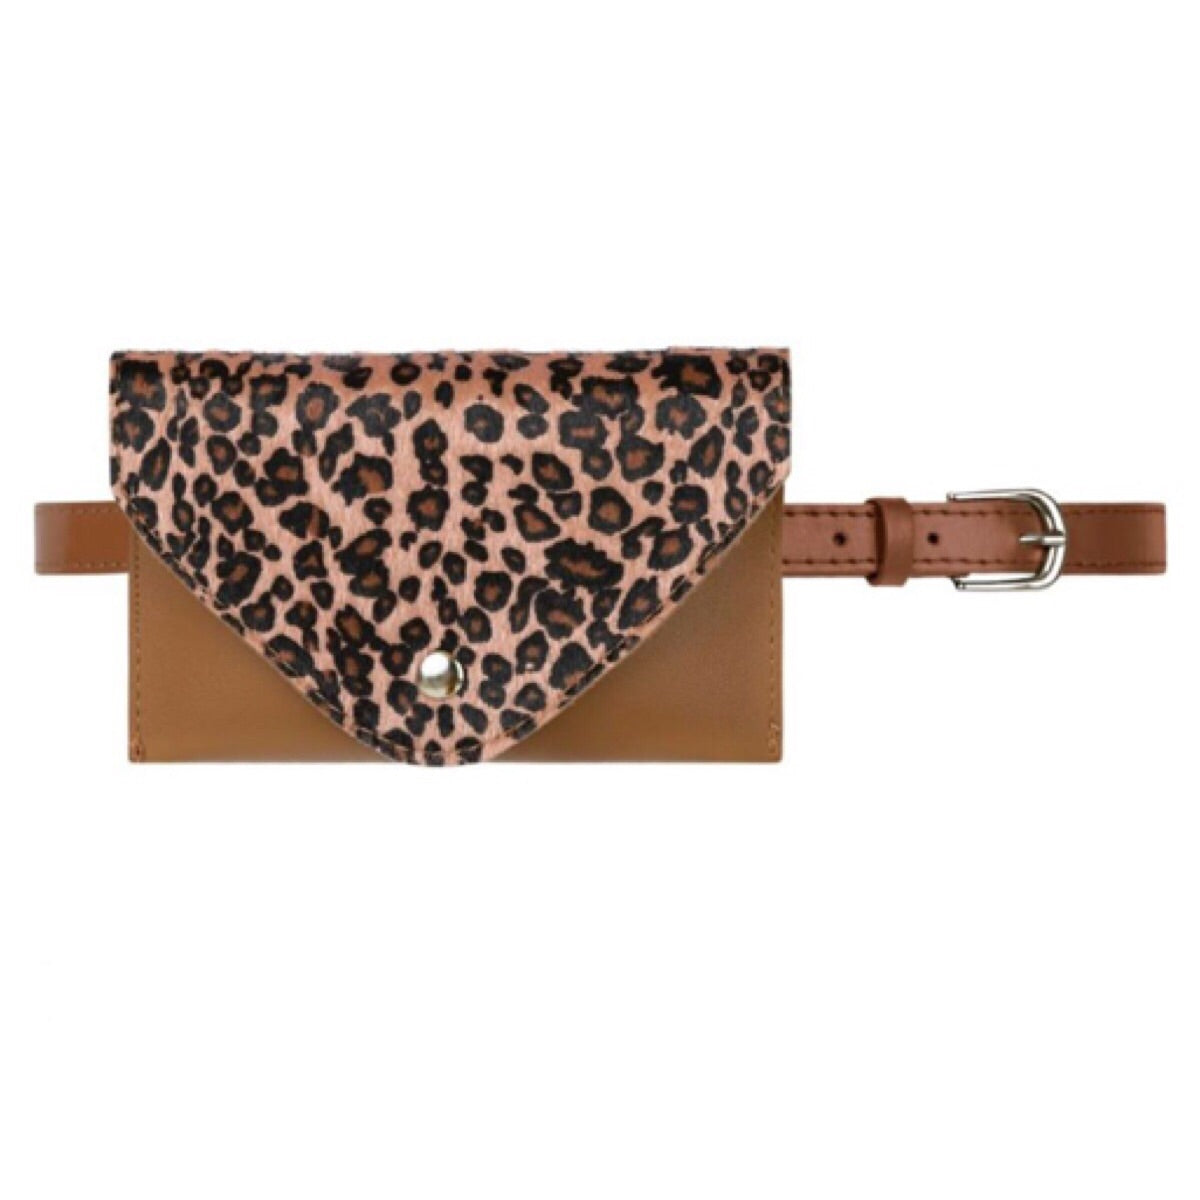 It's a Wild Life Belt Bag Panter - LeatherFeather